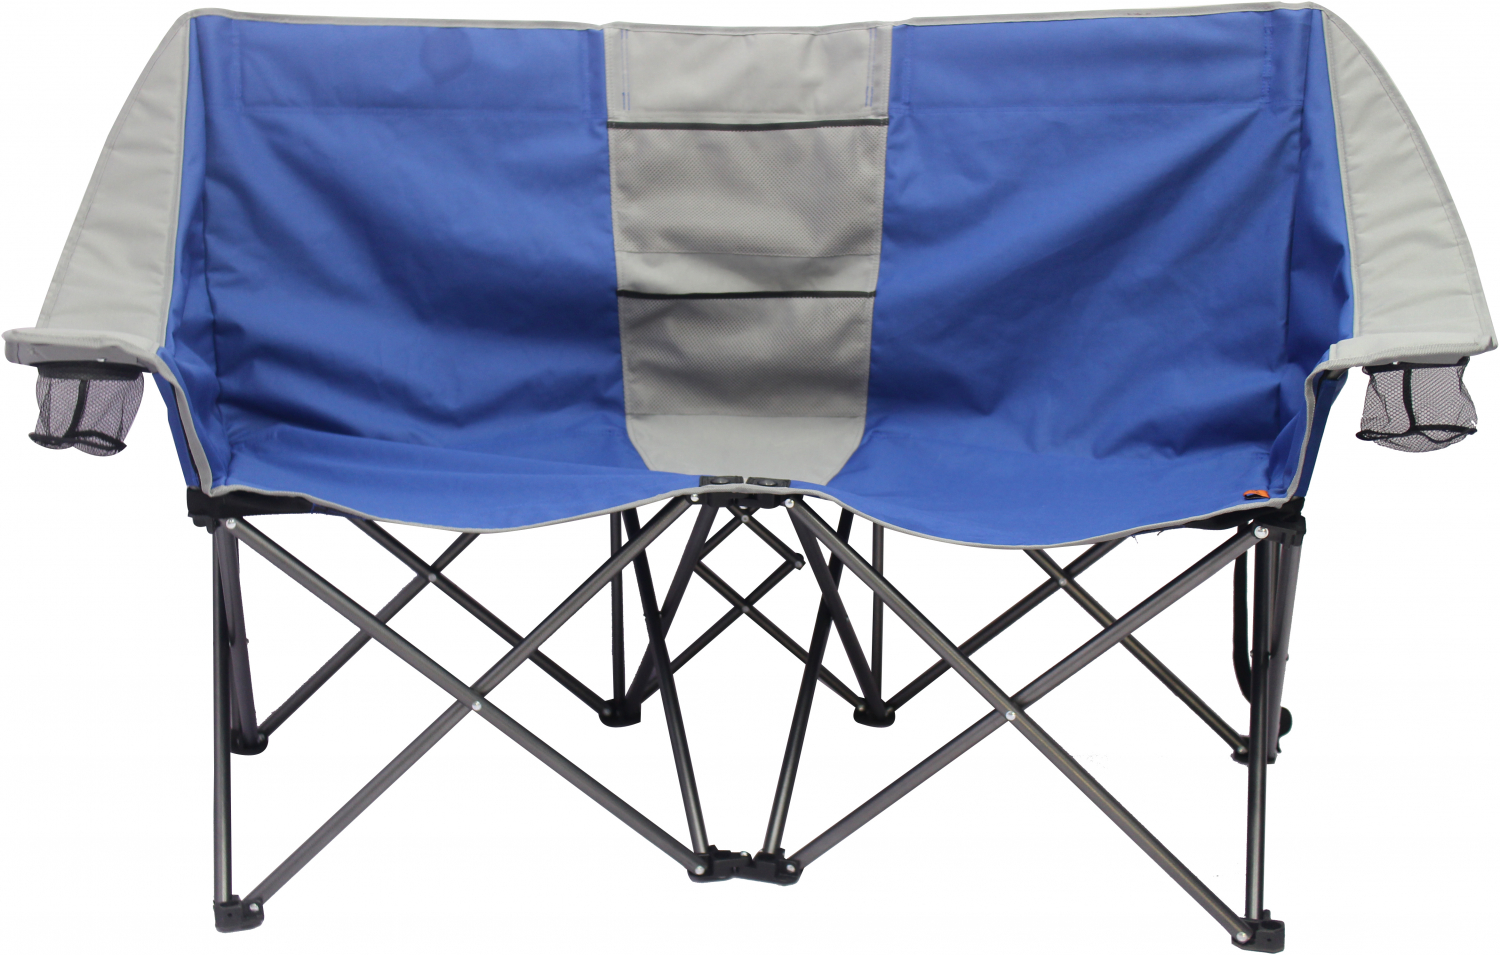 Enjoyable Details About Ozark Trail Two Person Conversation Camping Chair Lamtechconsult Wood Chair Design Ideas Lamtechconsultcom